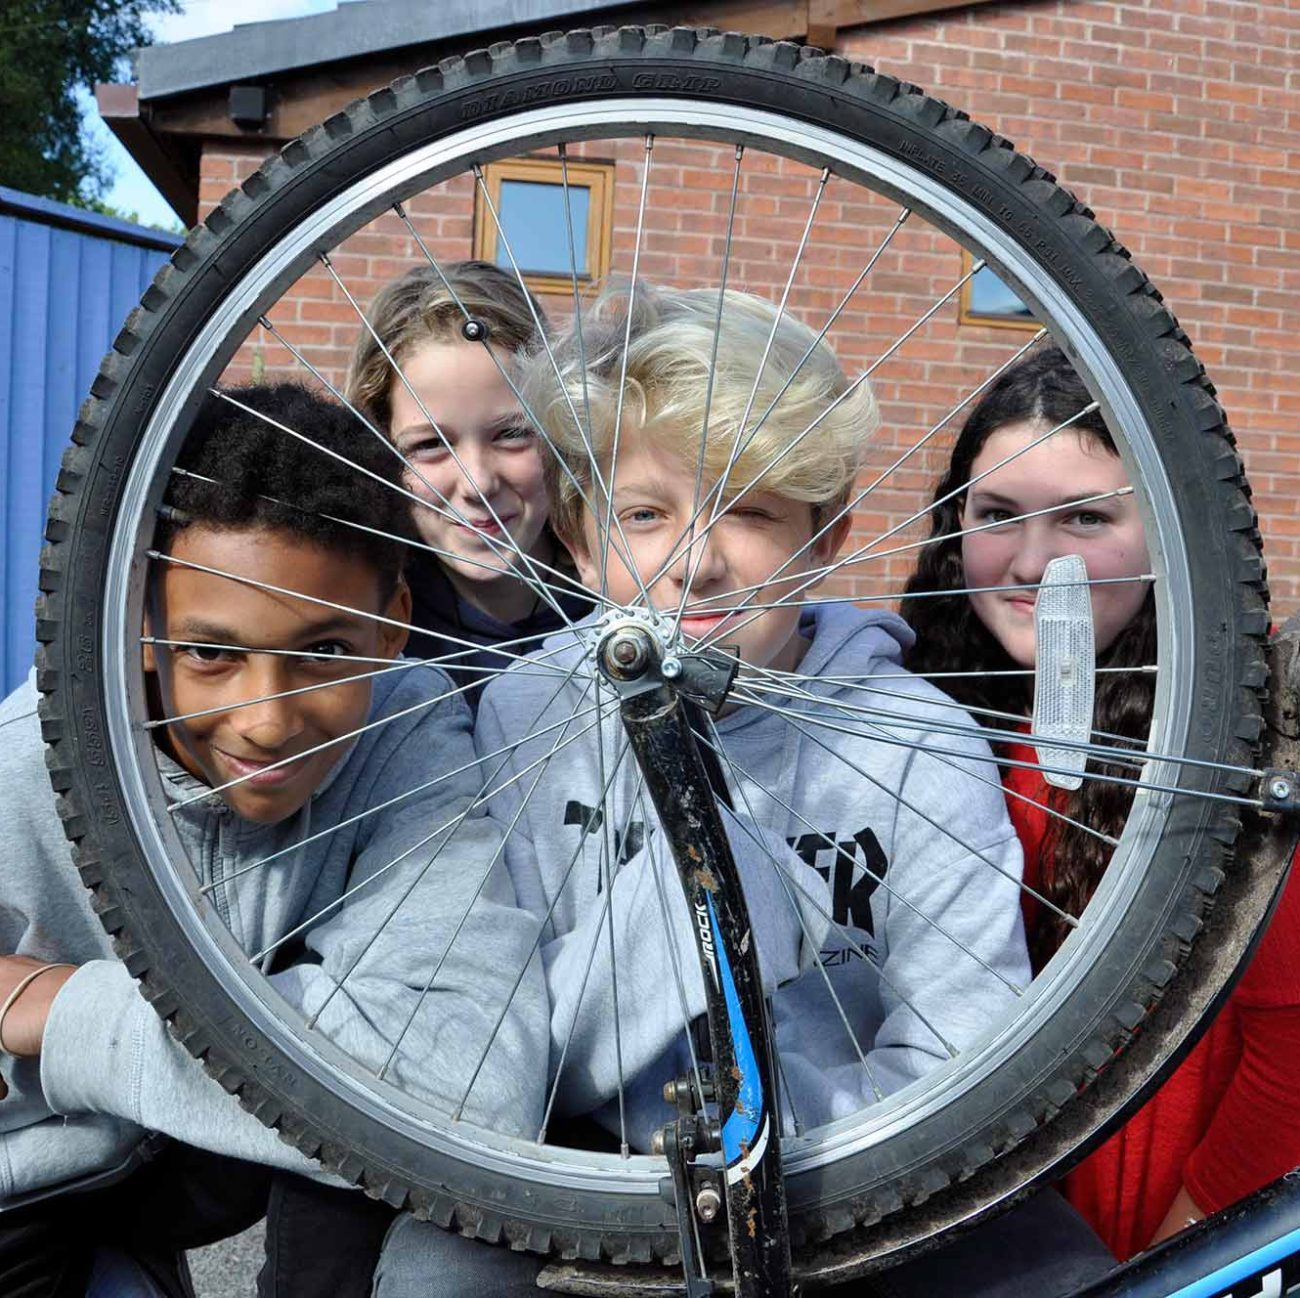 Me to We sponsored bike ride by pupils of Ringwood Waldorf School in aid of Emmaus charity